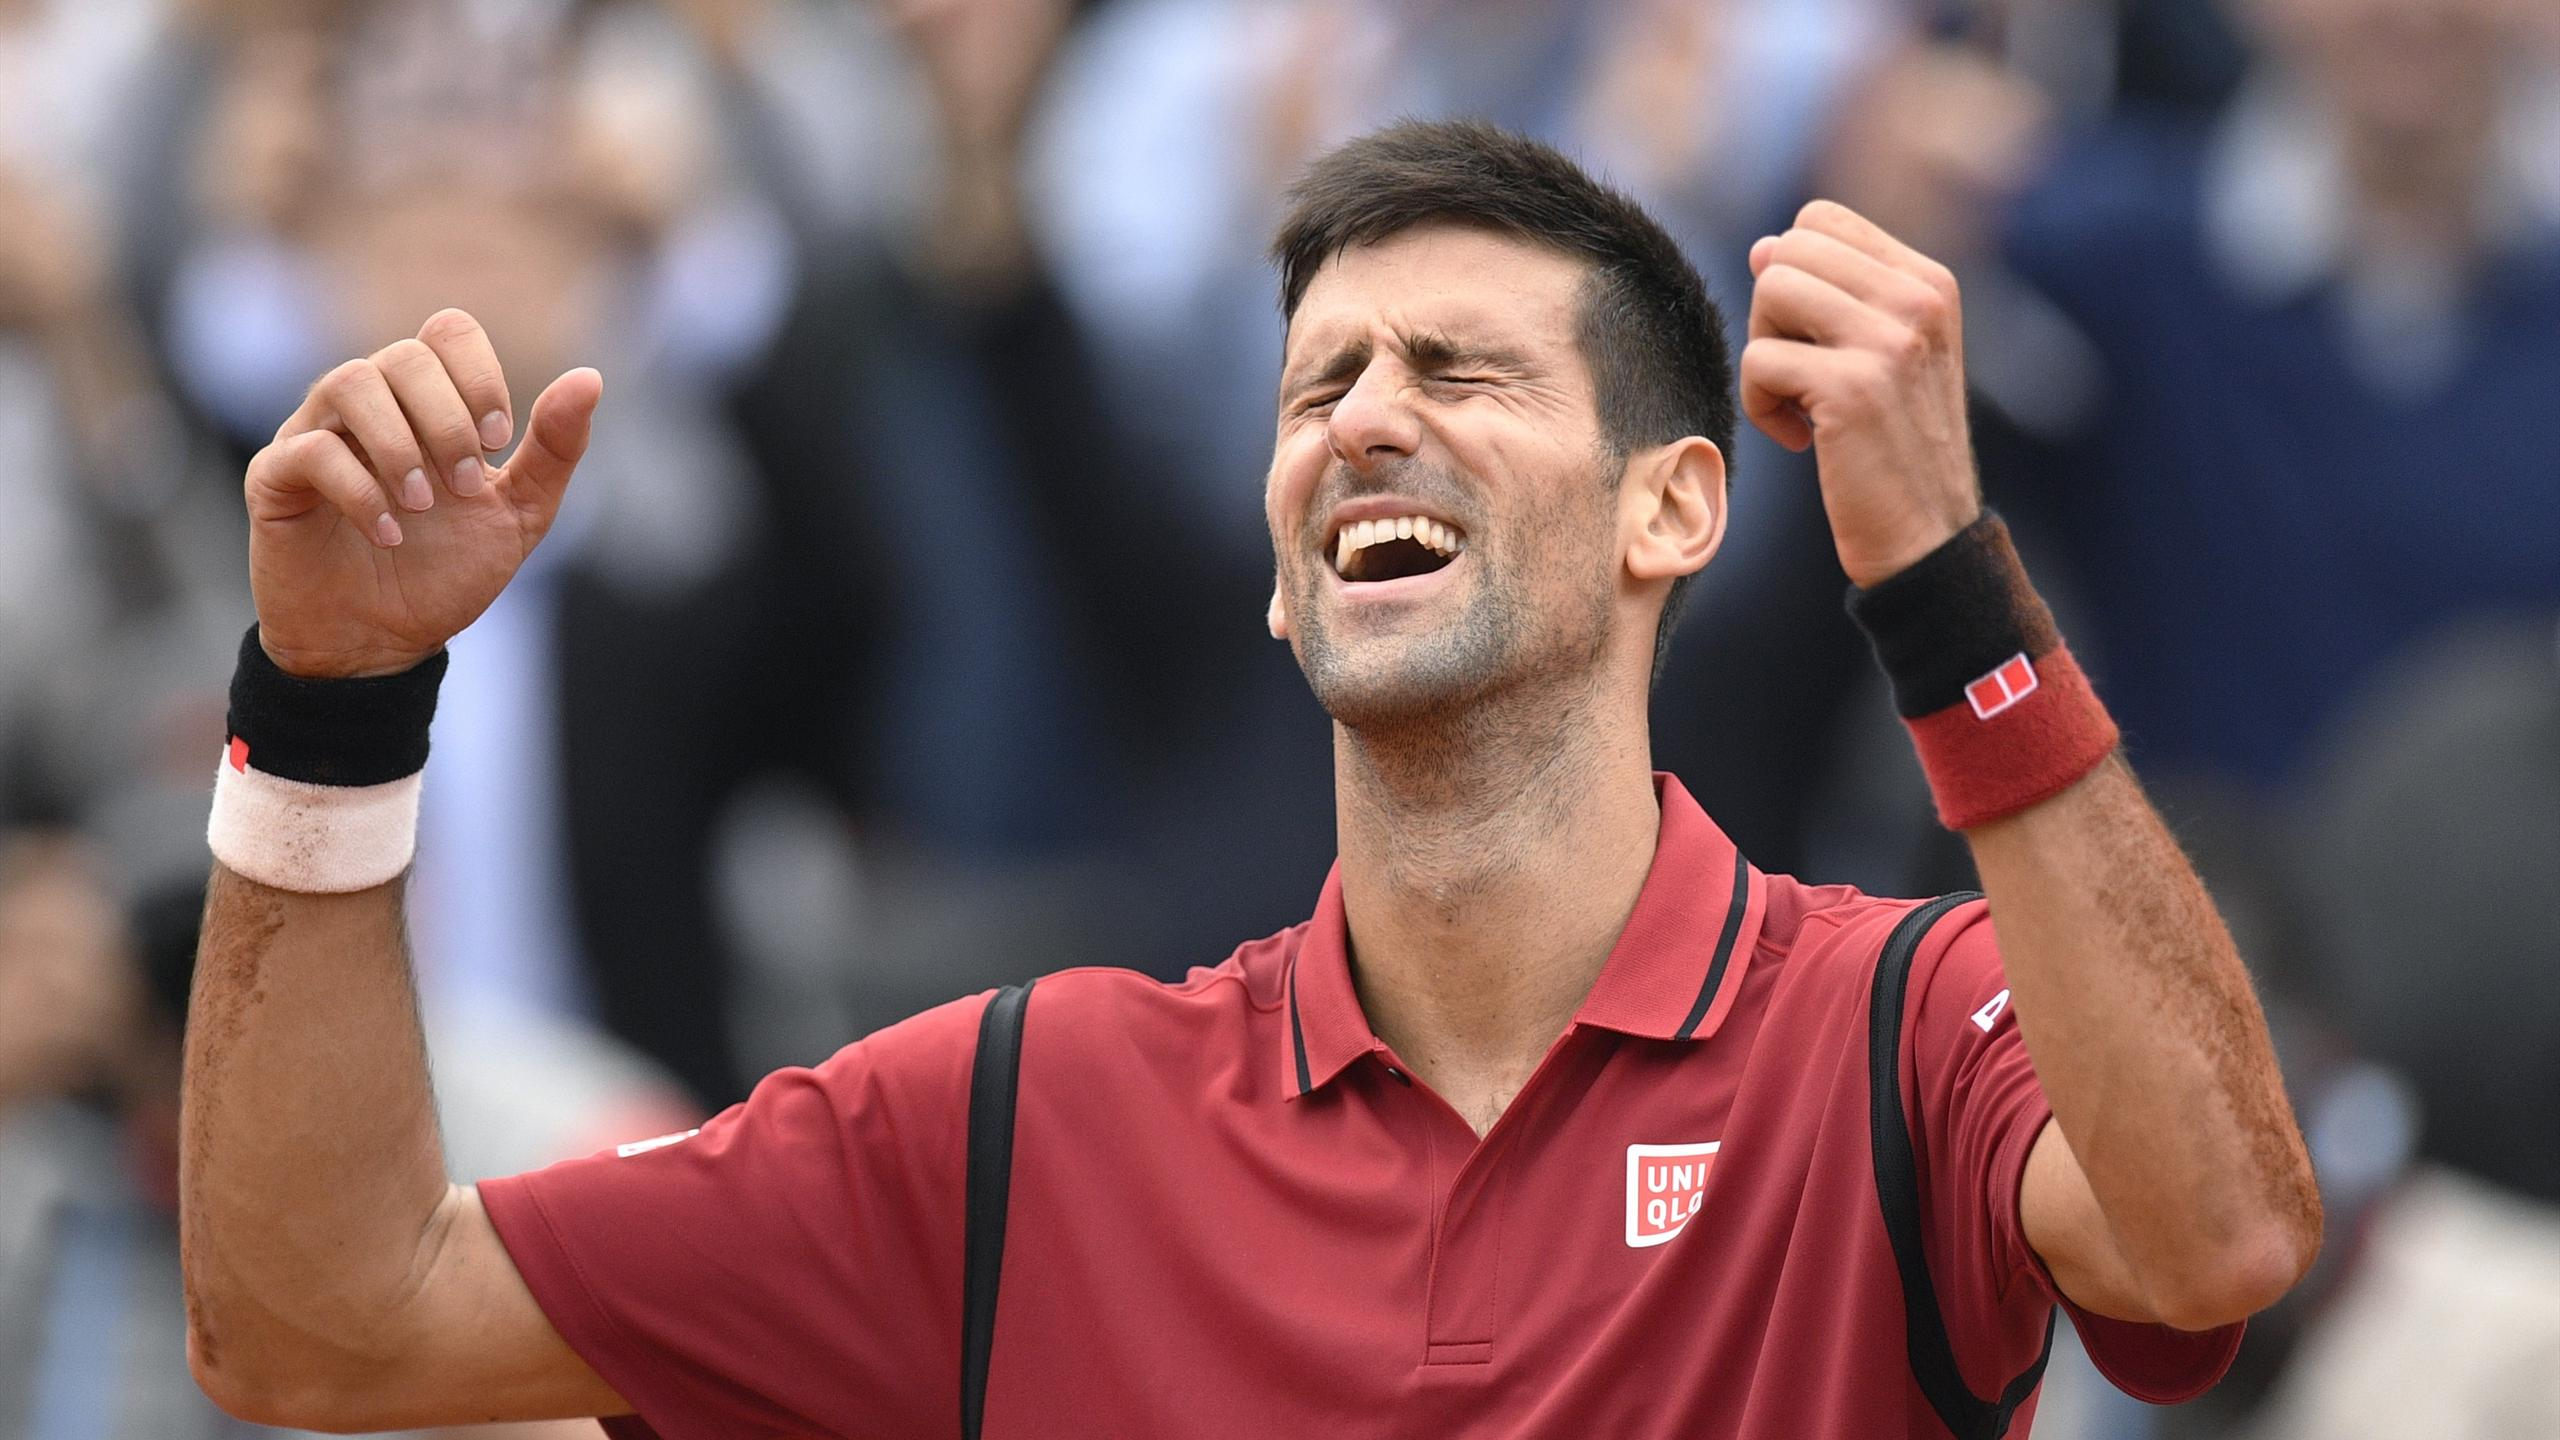 Serbia's Novak Djokovic reacts after winning the men's final match against Britain's Andy Murray at the Roland Garros 2016 French Tennis Open in Paris on June 5, 2016